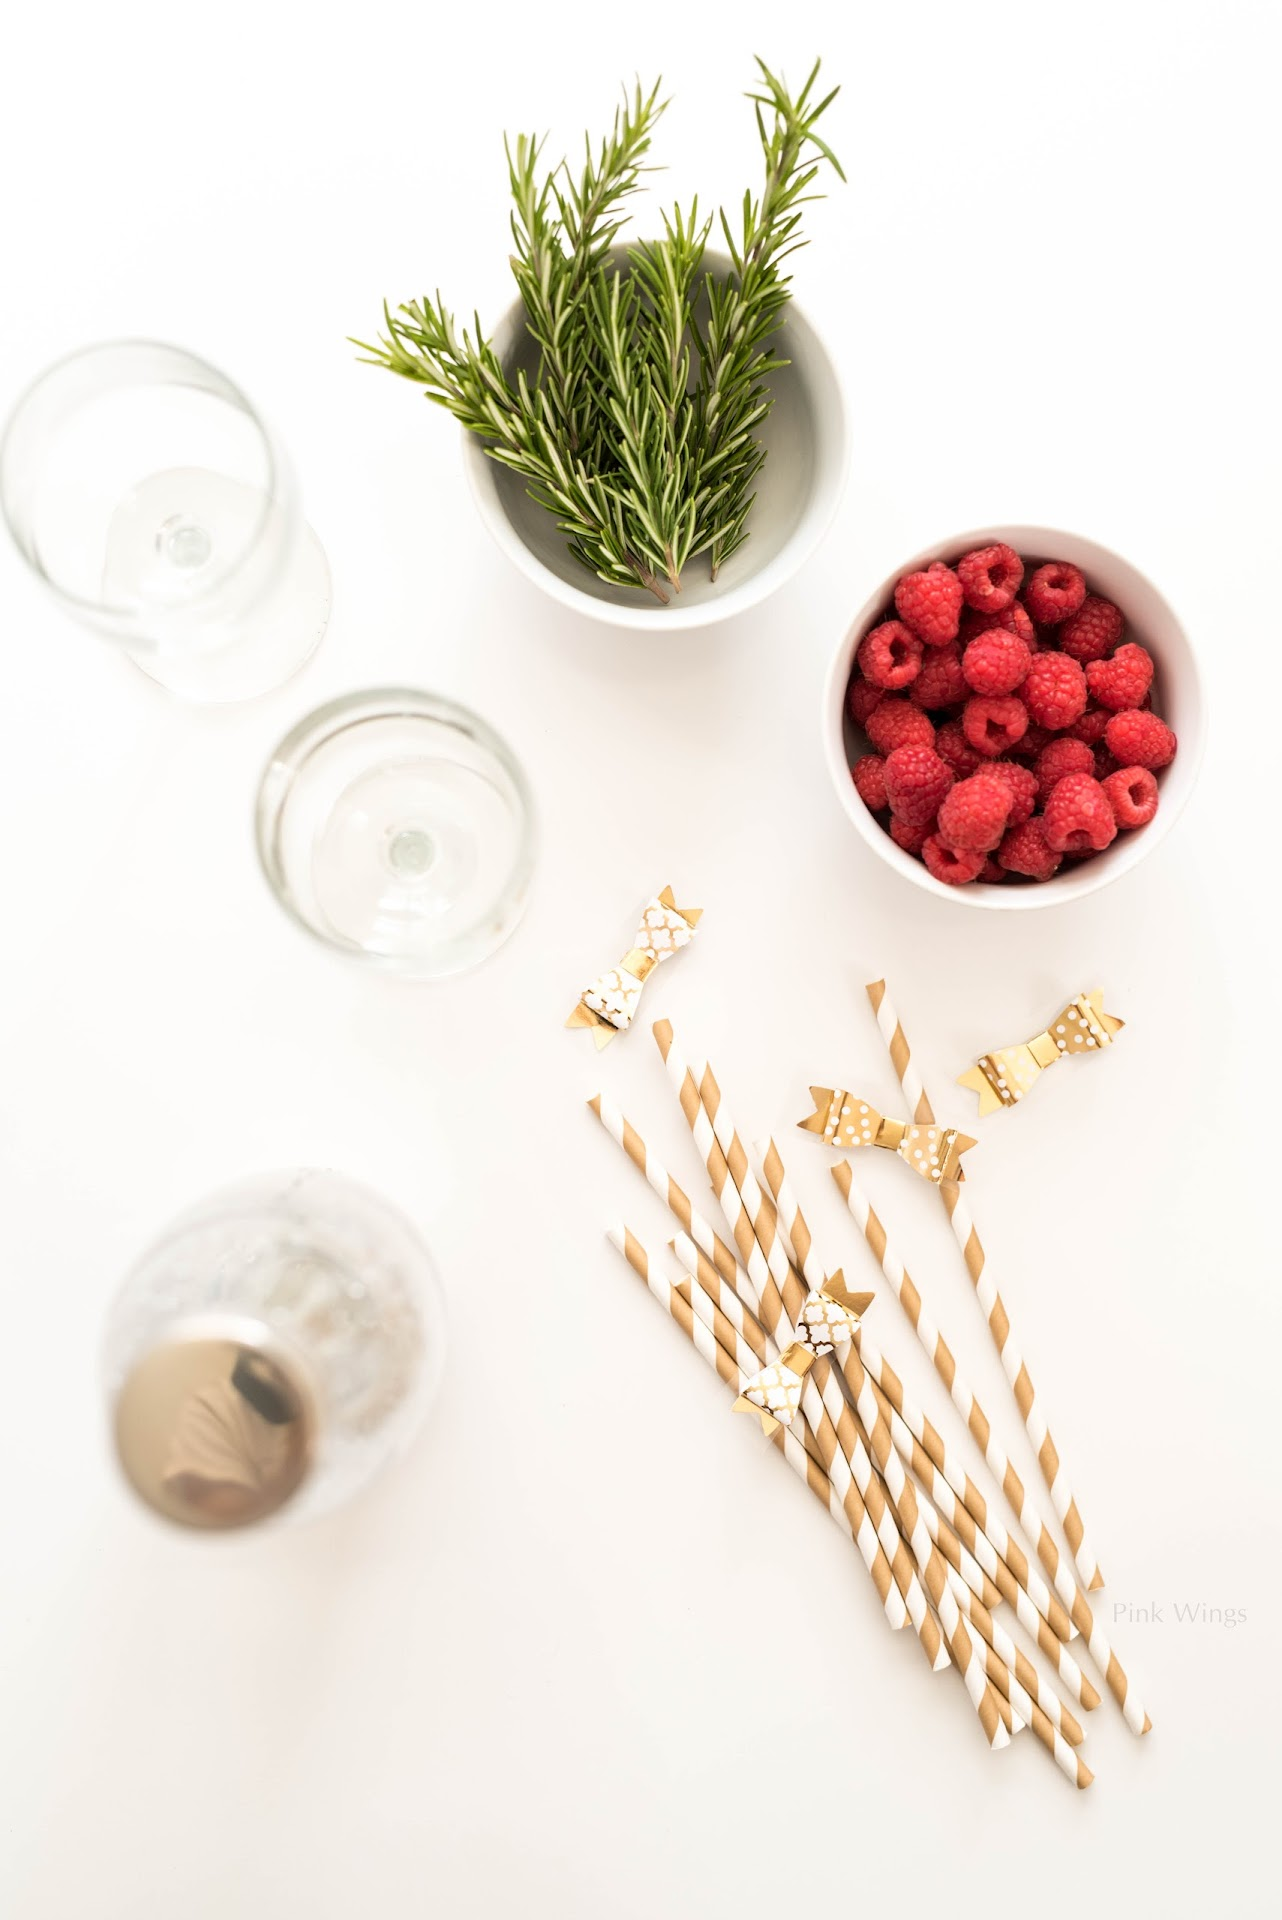 party drink recipe, holidays, christmas, winter, new year's, gold straws, diy drink stirrers, craft blogger, mormon lds, san francisco bay area blogger, mocktail